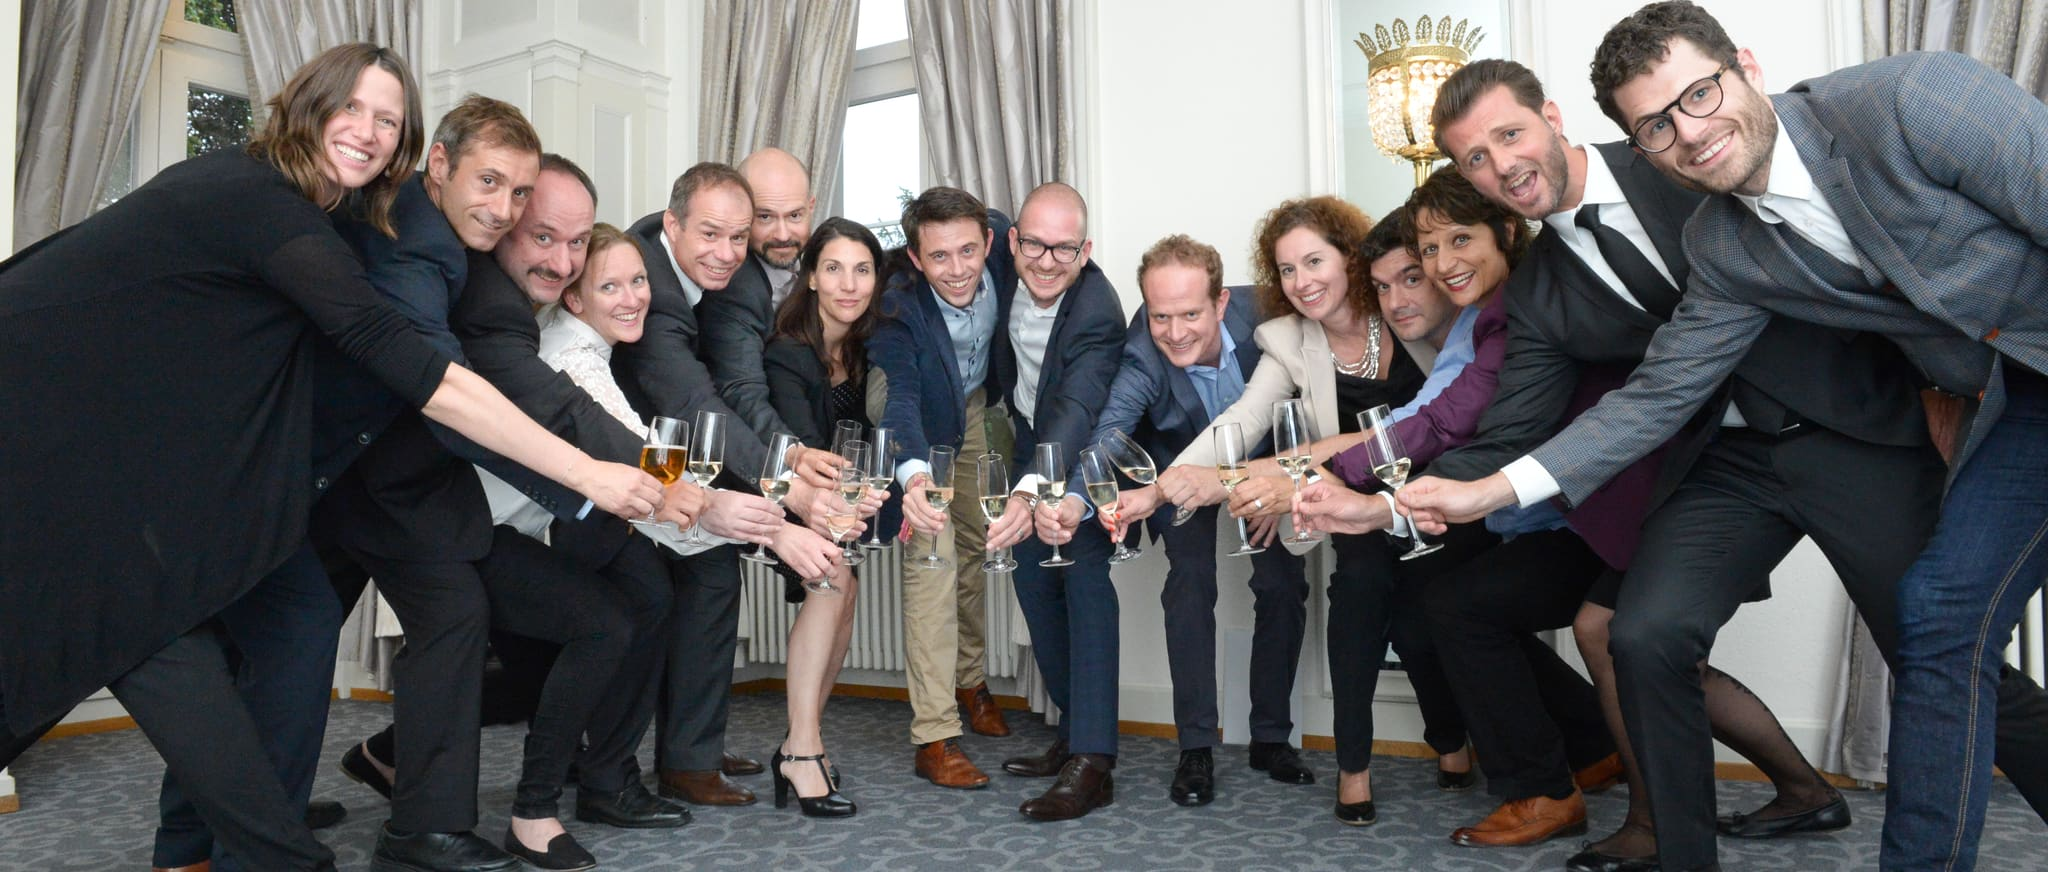 Diplomfeier EMBA General Management 2016